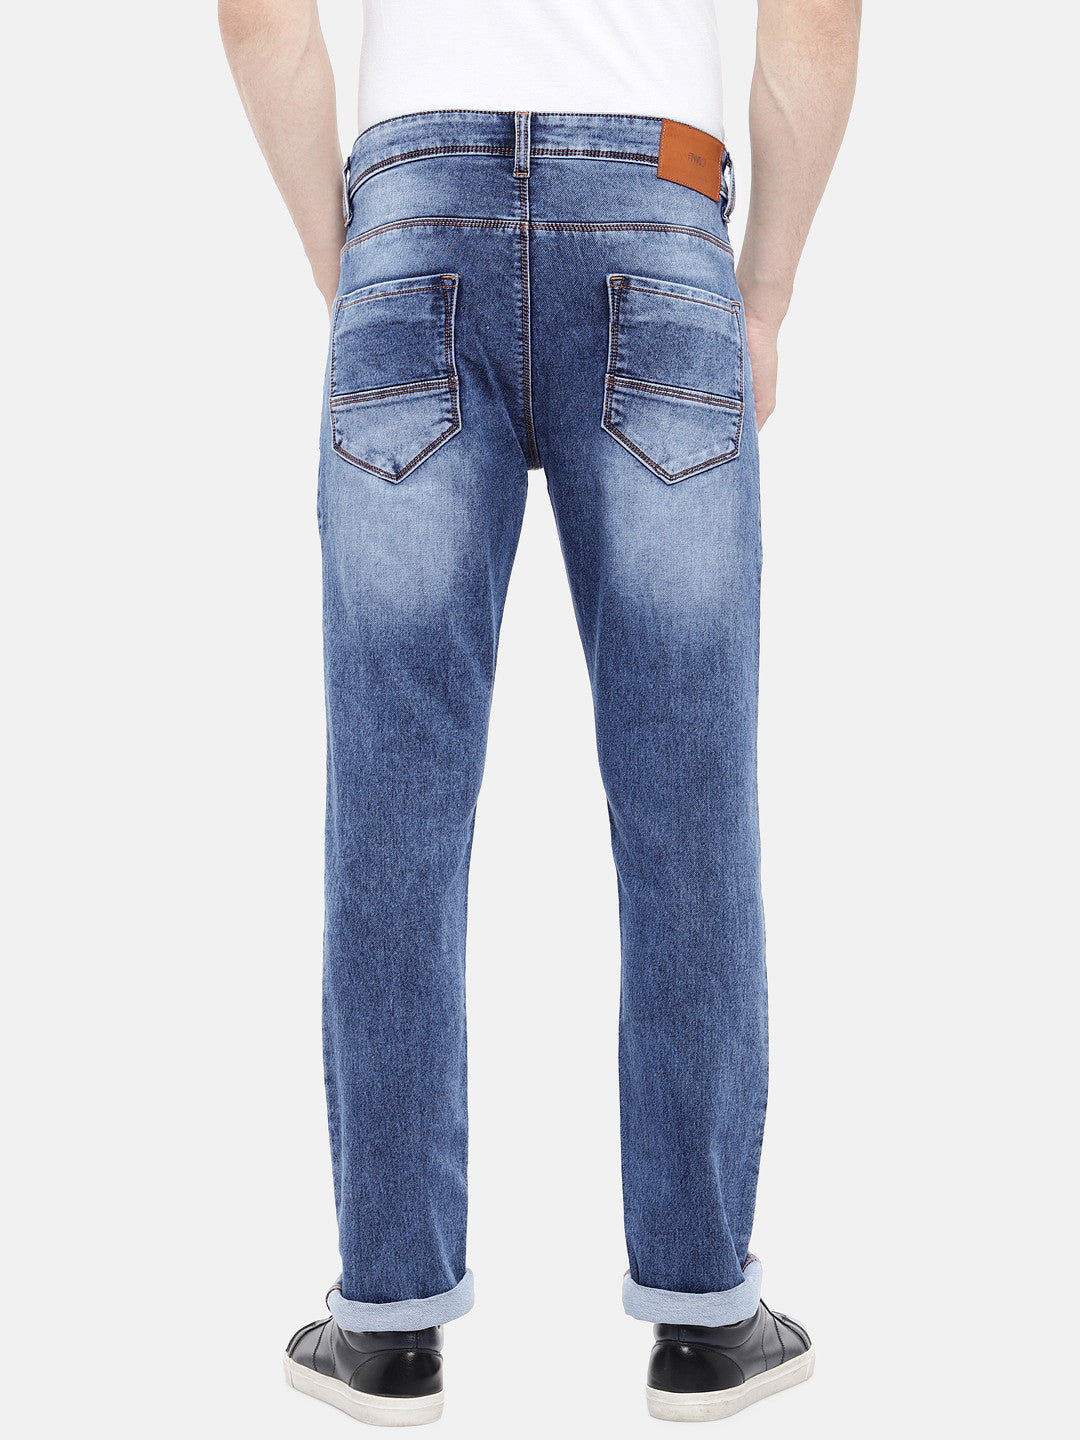 Navy Blue Regular Fit Mid-Rise Clean Look Jeans-3